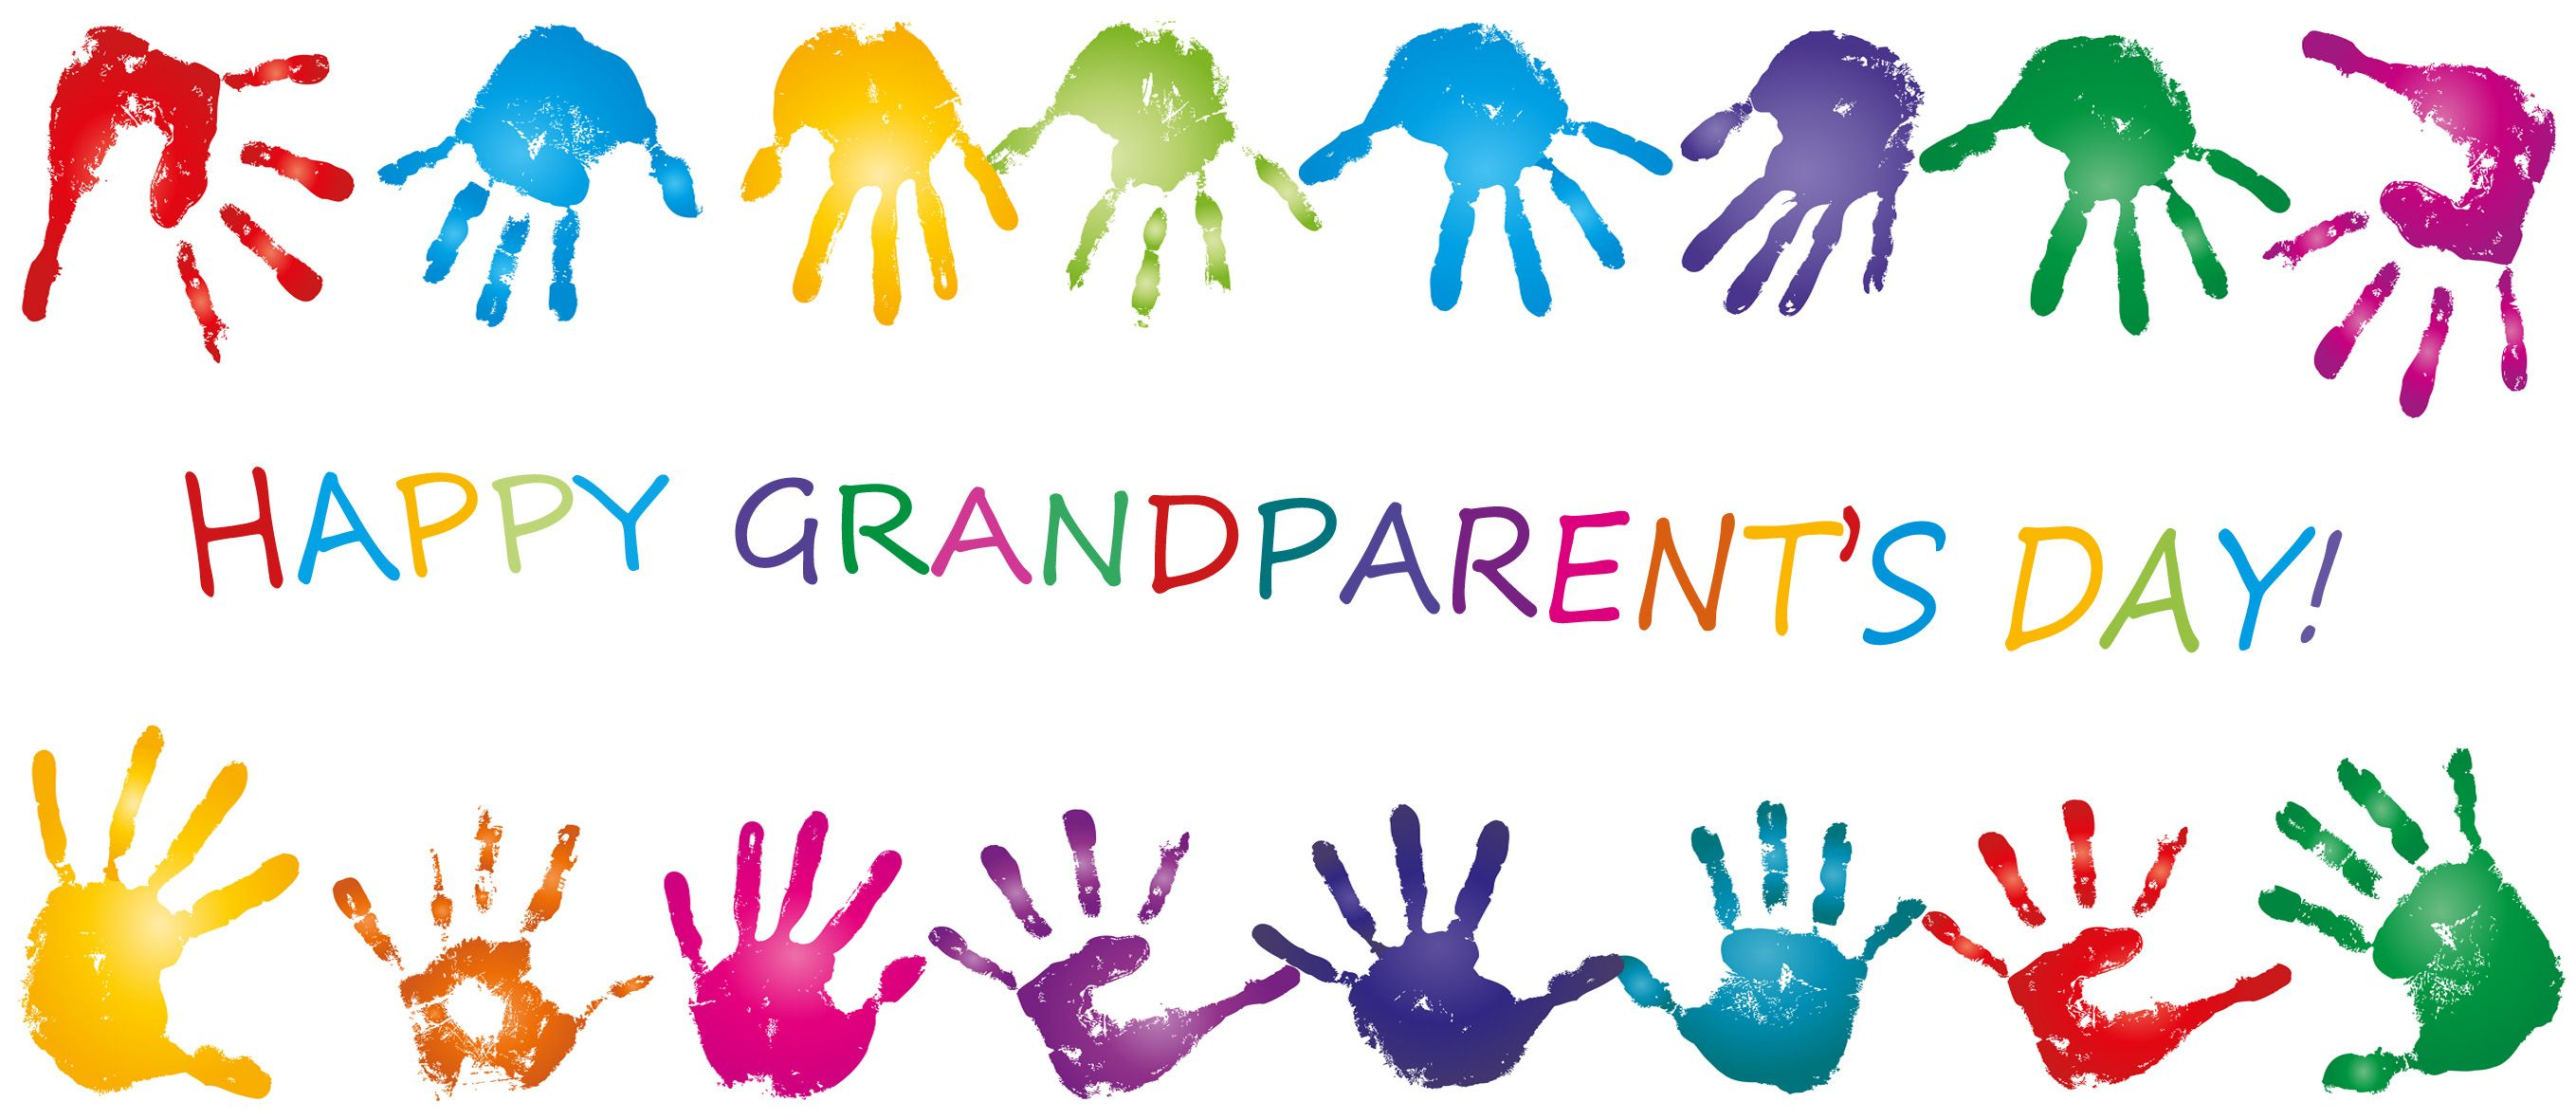 grandparent's day . Grandparent's Day Pinterest